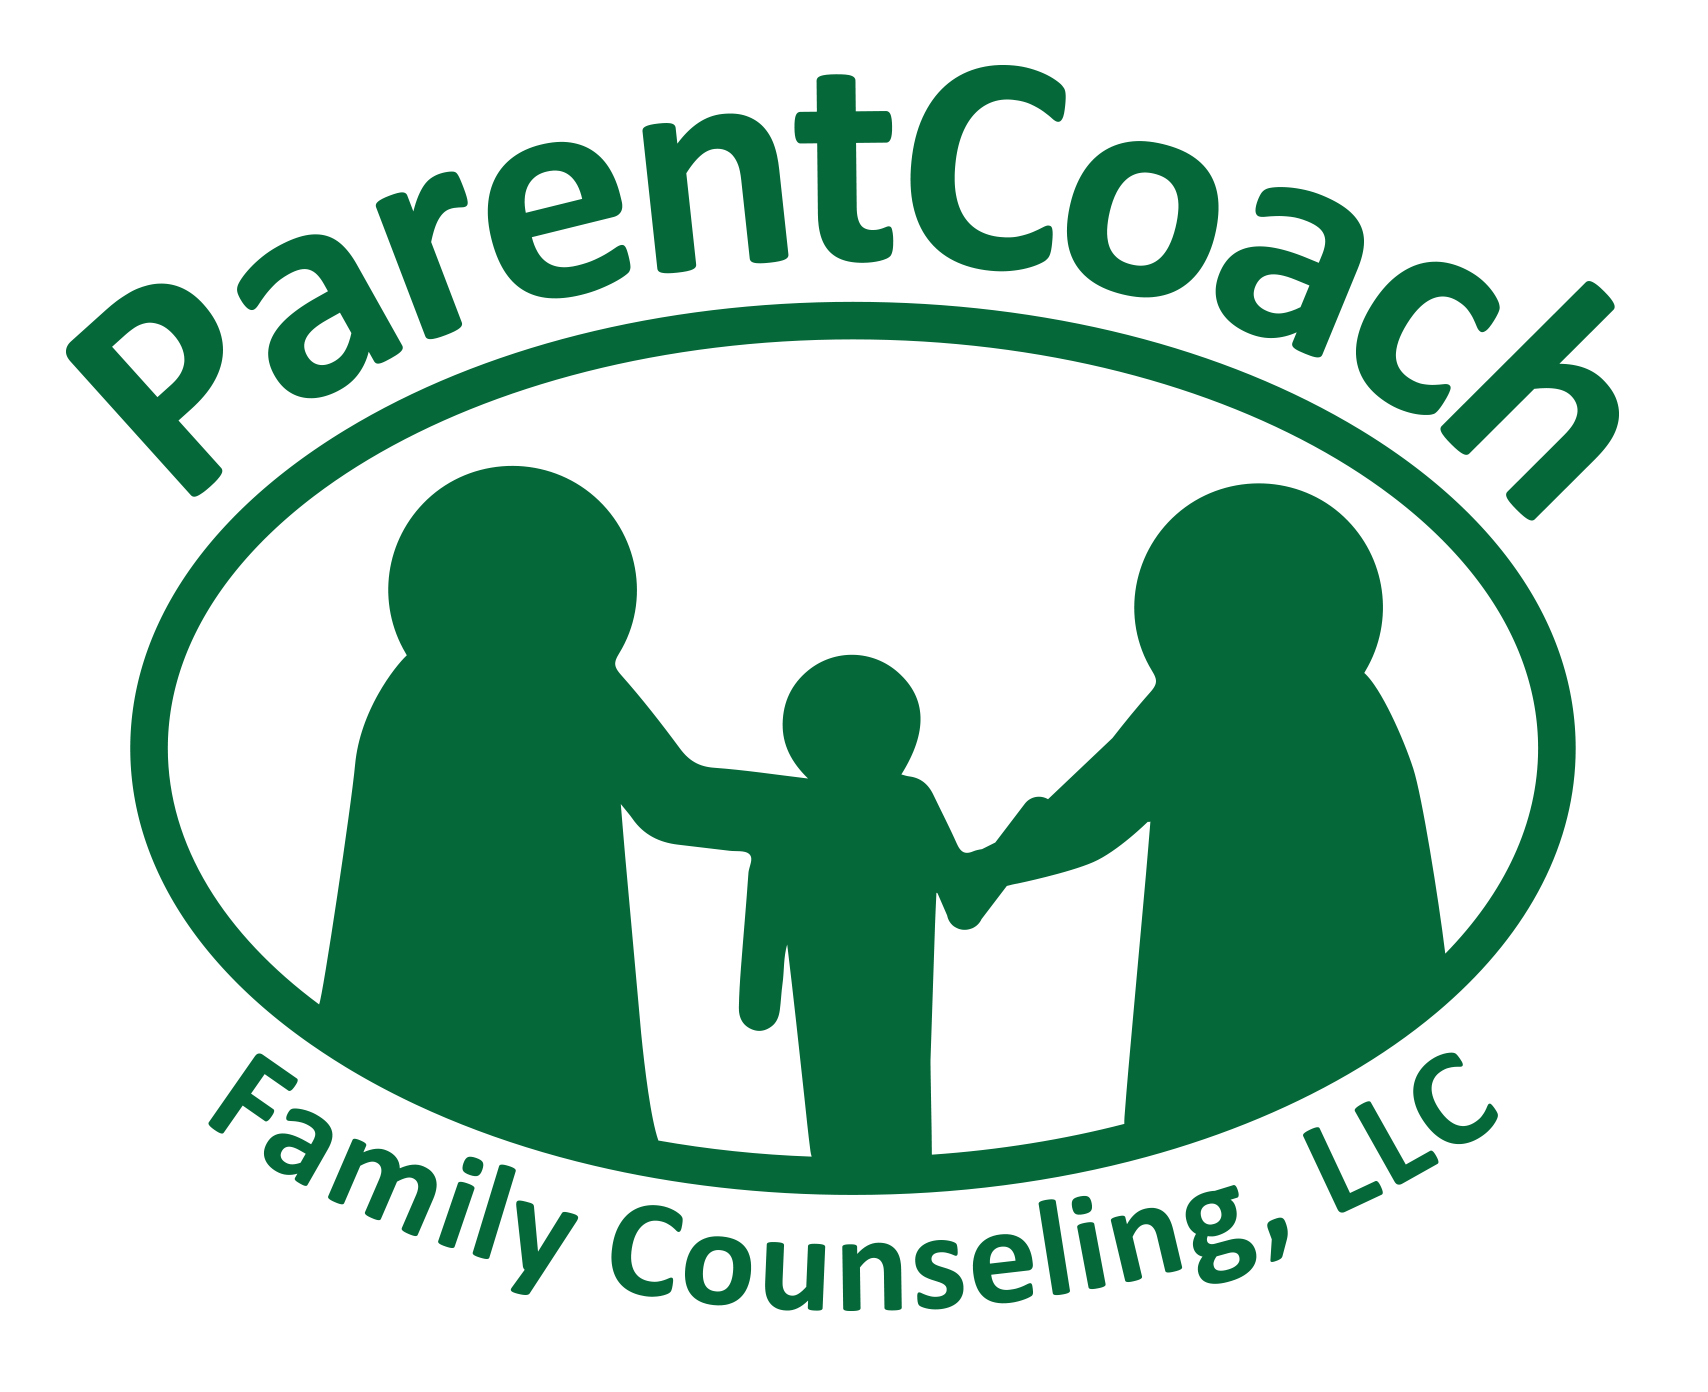 ParentCoach Family Counseling, LLC